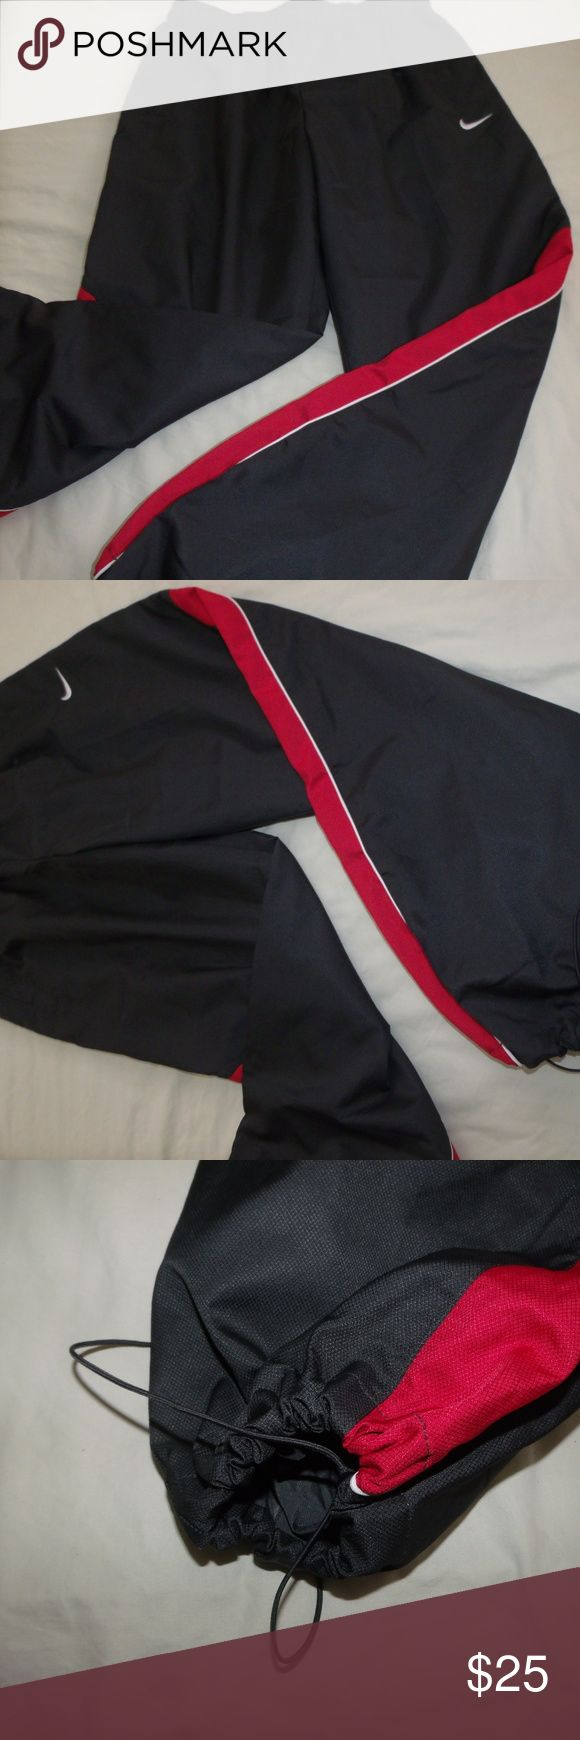 NWOT Nike Lined Joggers Mens Nike runner Mesh Lined Pants Size XL Drawstring Closure Bottom Elastic and drawstring waist Dark Grey with Red Panel New without tags Nike Pants Sweatpants & Joggers